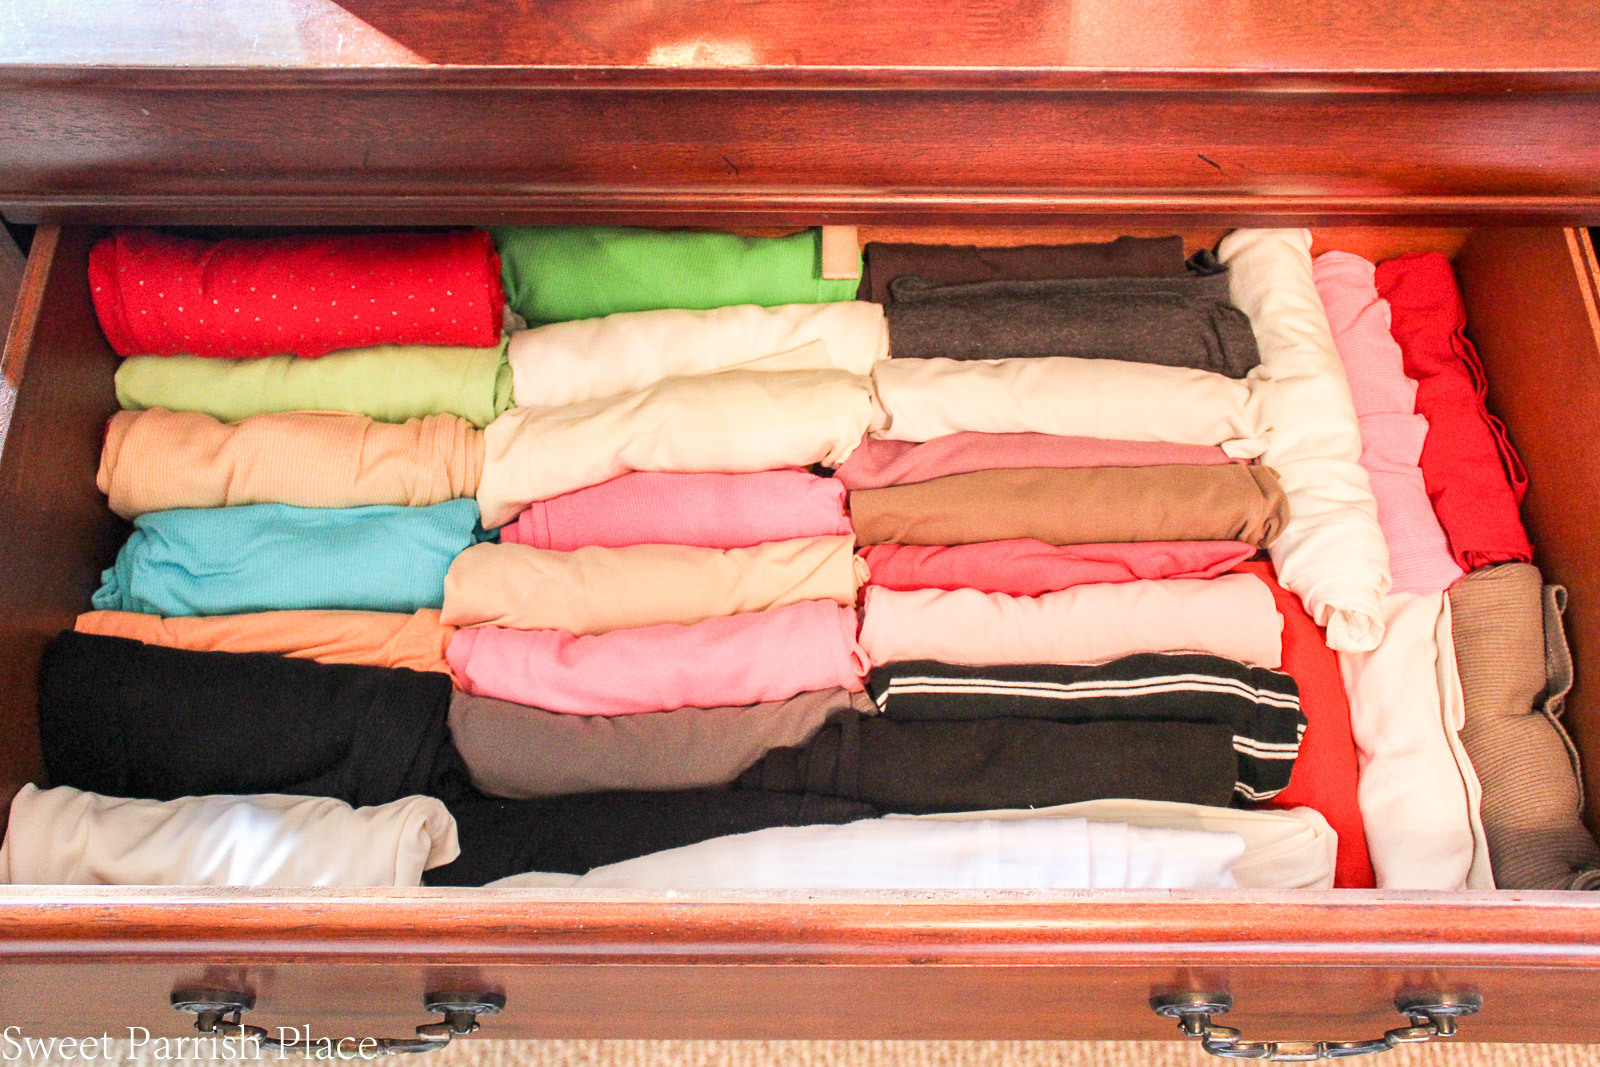 Today I'm sharing 5 ways to organize your drawers